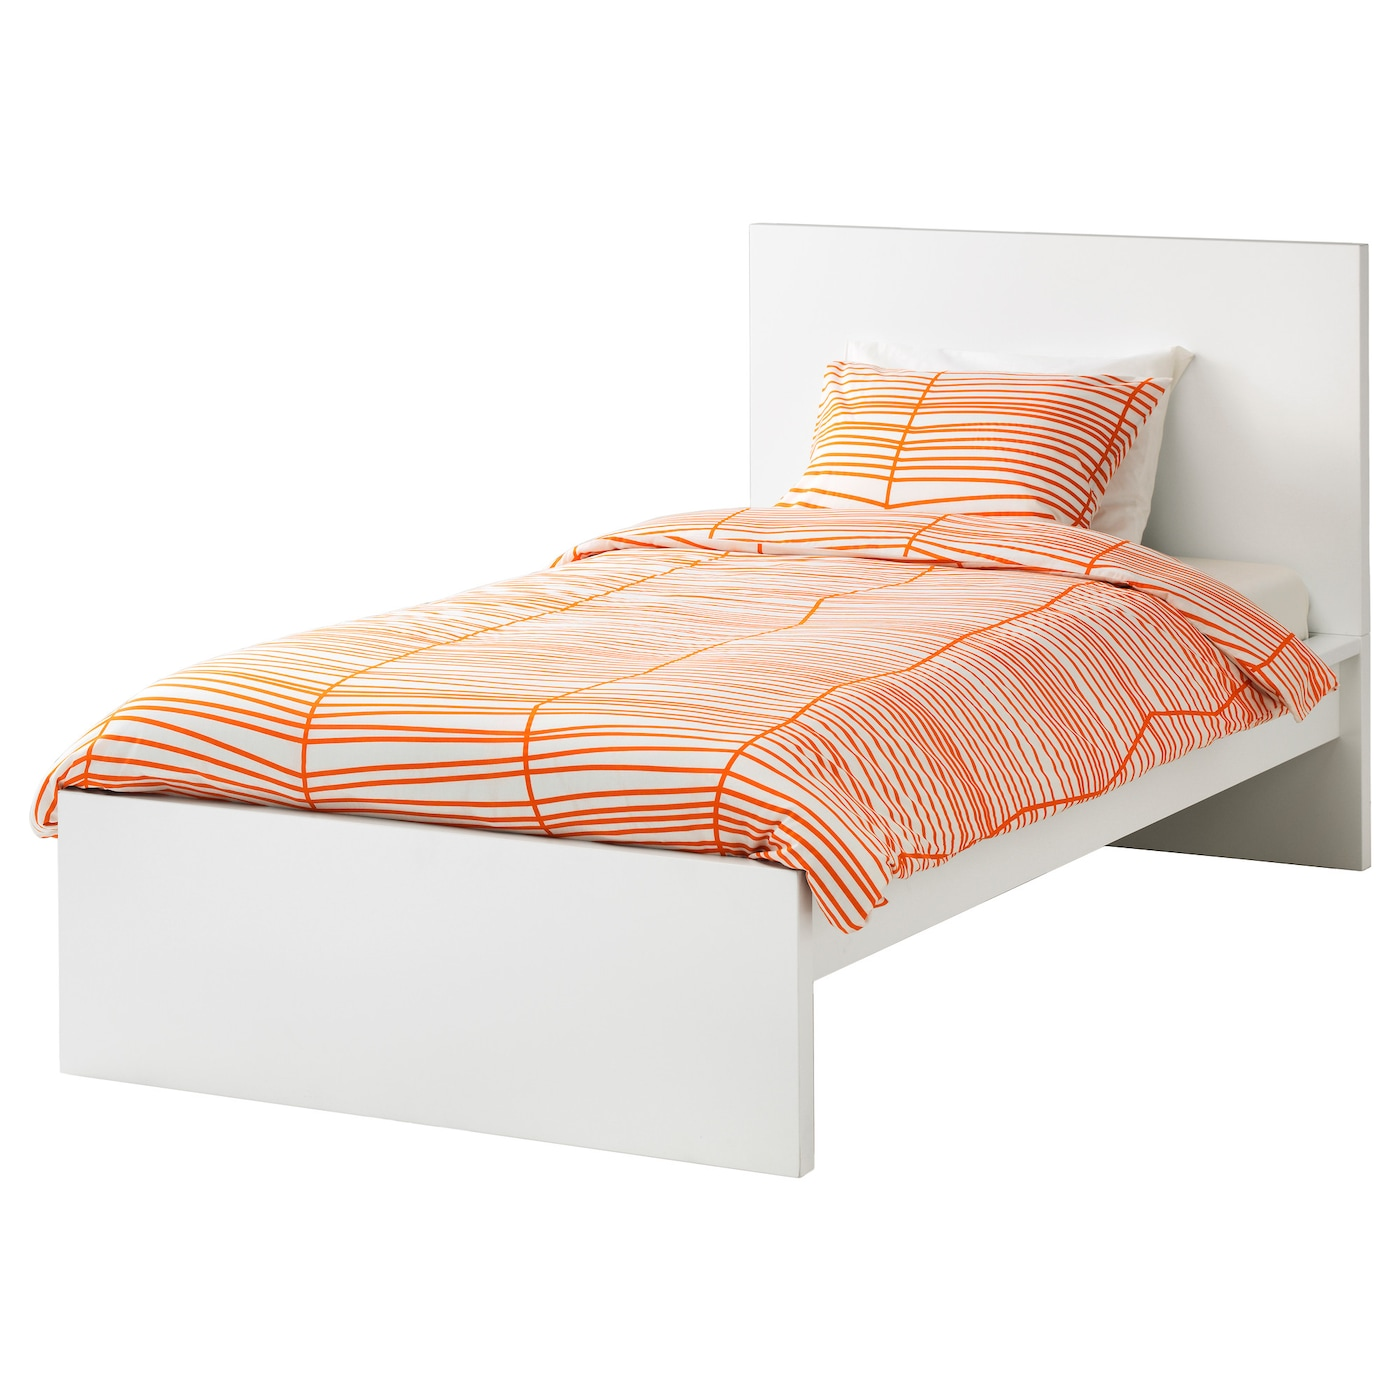 malm cadre de lit haut blanc 90 x 200 cm ikea. Black Bedroom Furniture Sets. Home Design Ideas